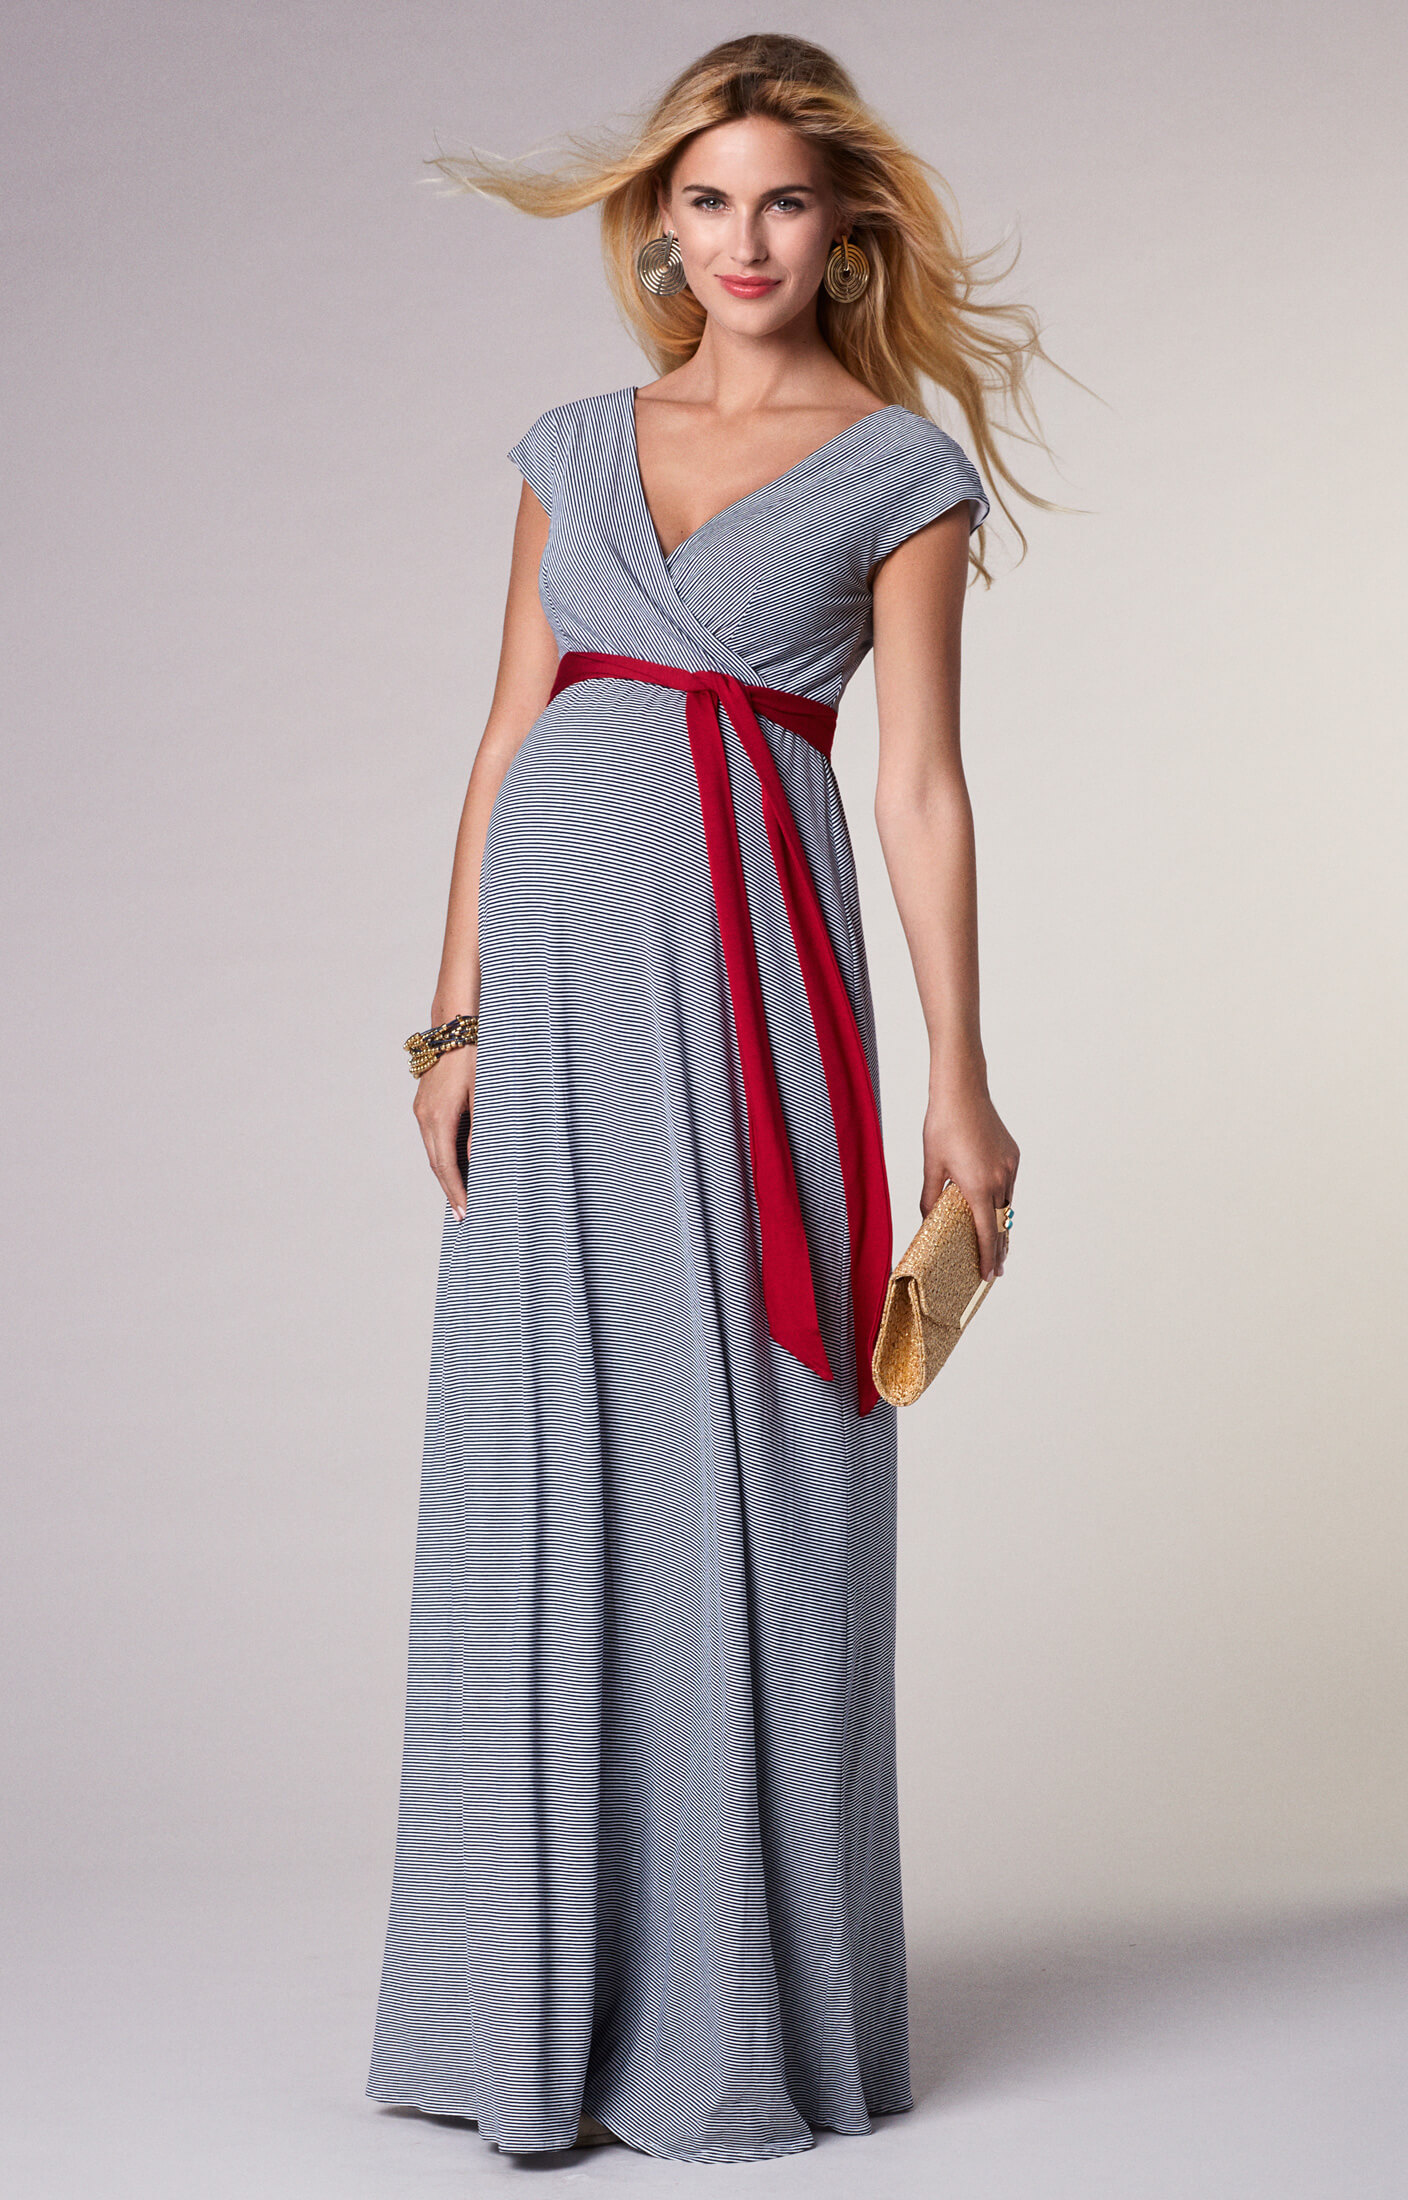 Find party maxi dresses at ShopStyle. Shop the latest collection of party maxi dresses from the most popular stores - all in one place.